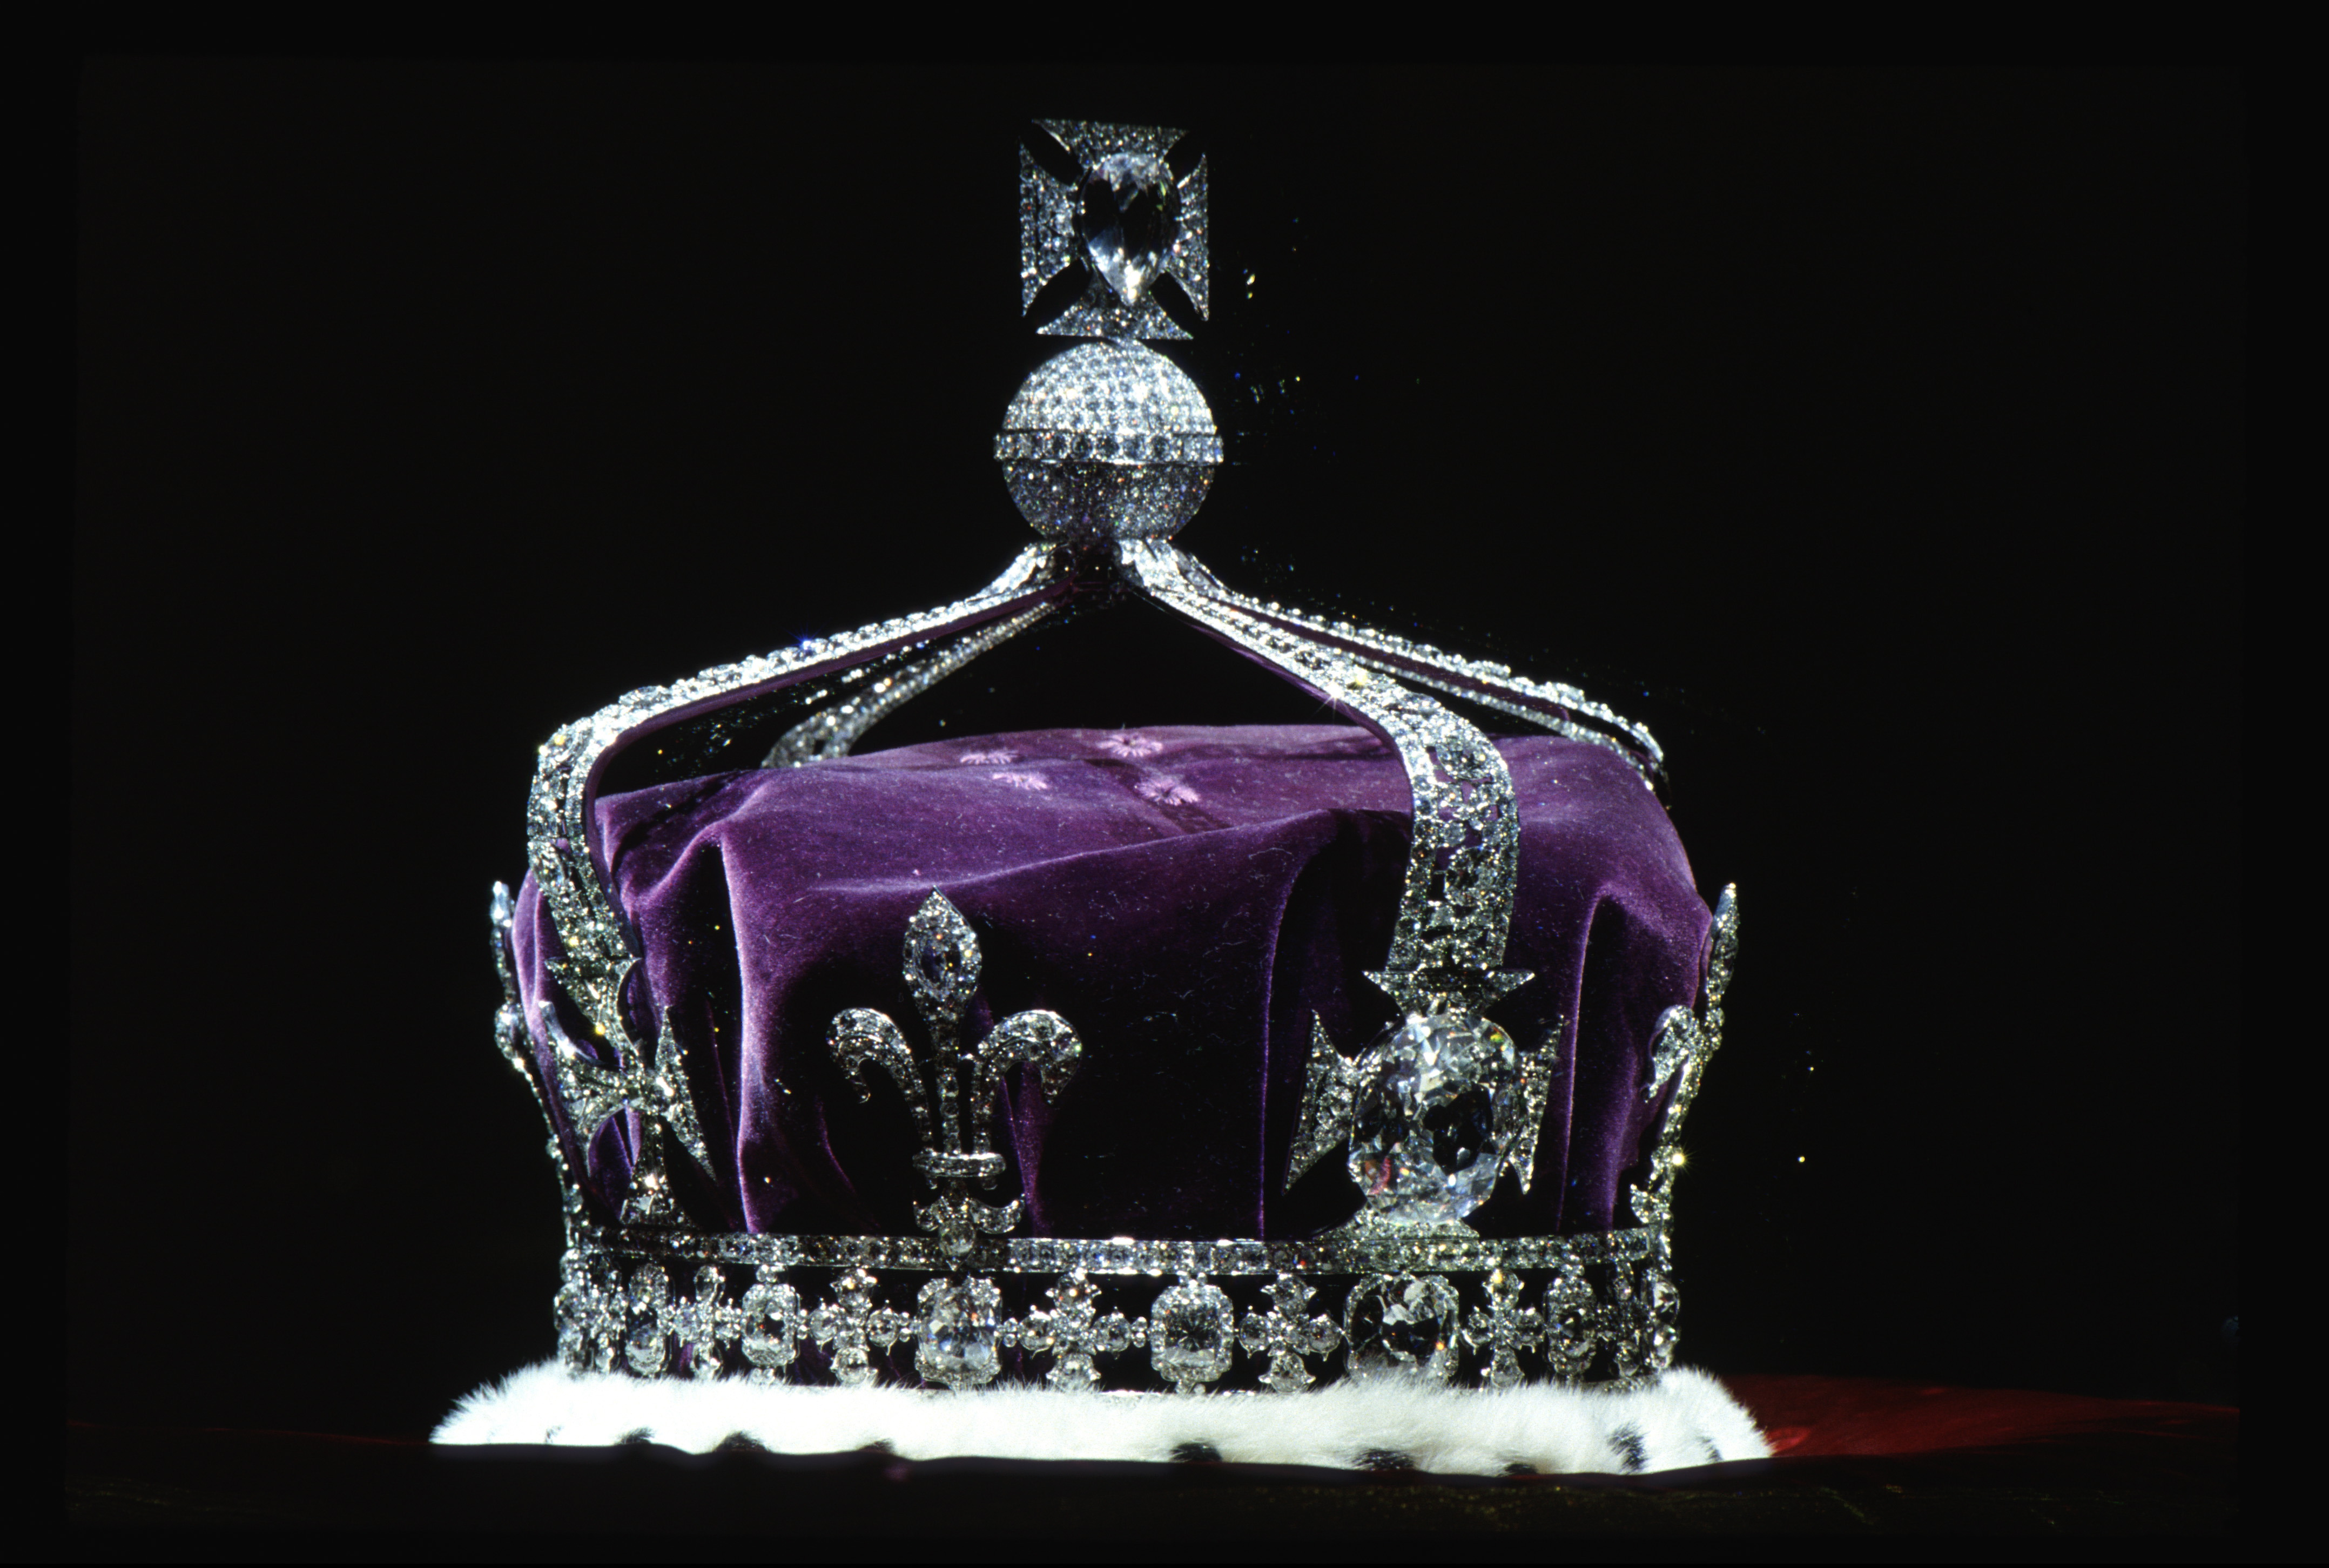 The Crown Of Queen Elizabeth The Queen Mother (1937) Made Of Platinum And Containing The Famous Koh-i-noor Diamond Along With Other Gems.